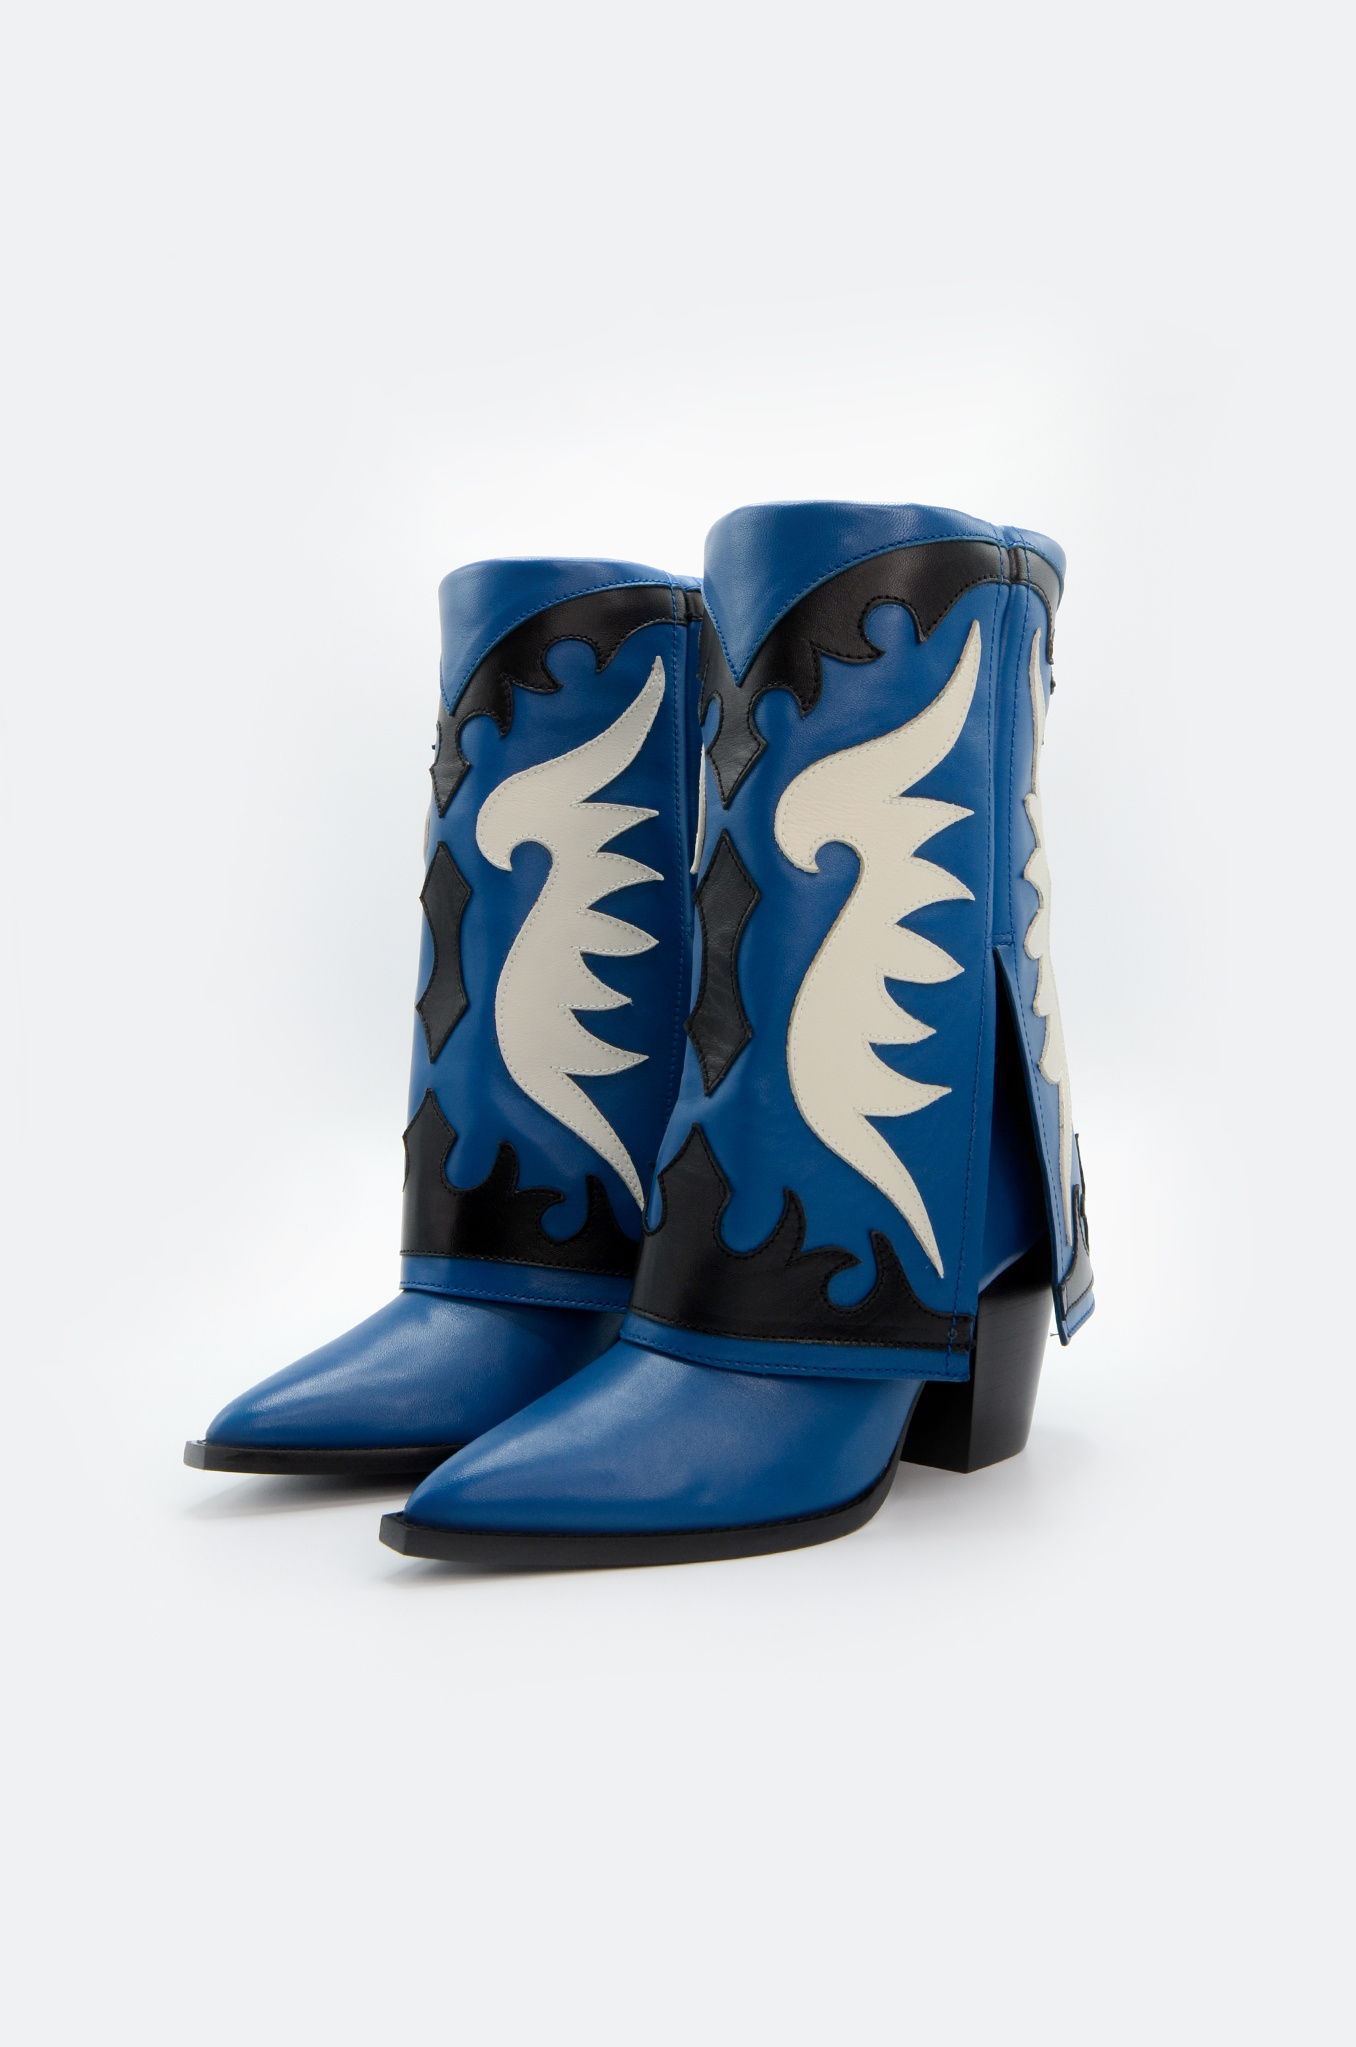 WESTERN STYLE BOOT IN BLUE-4